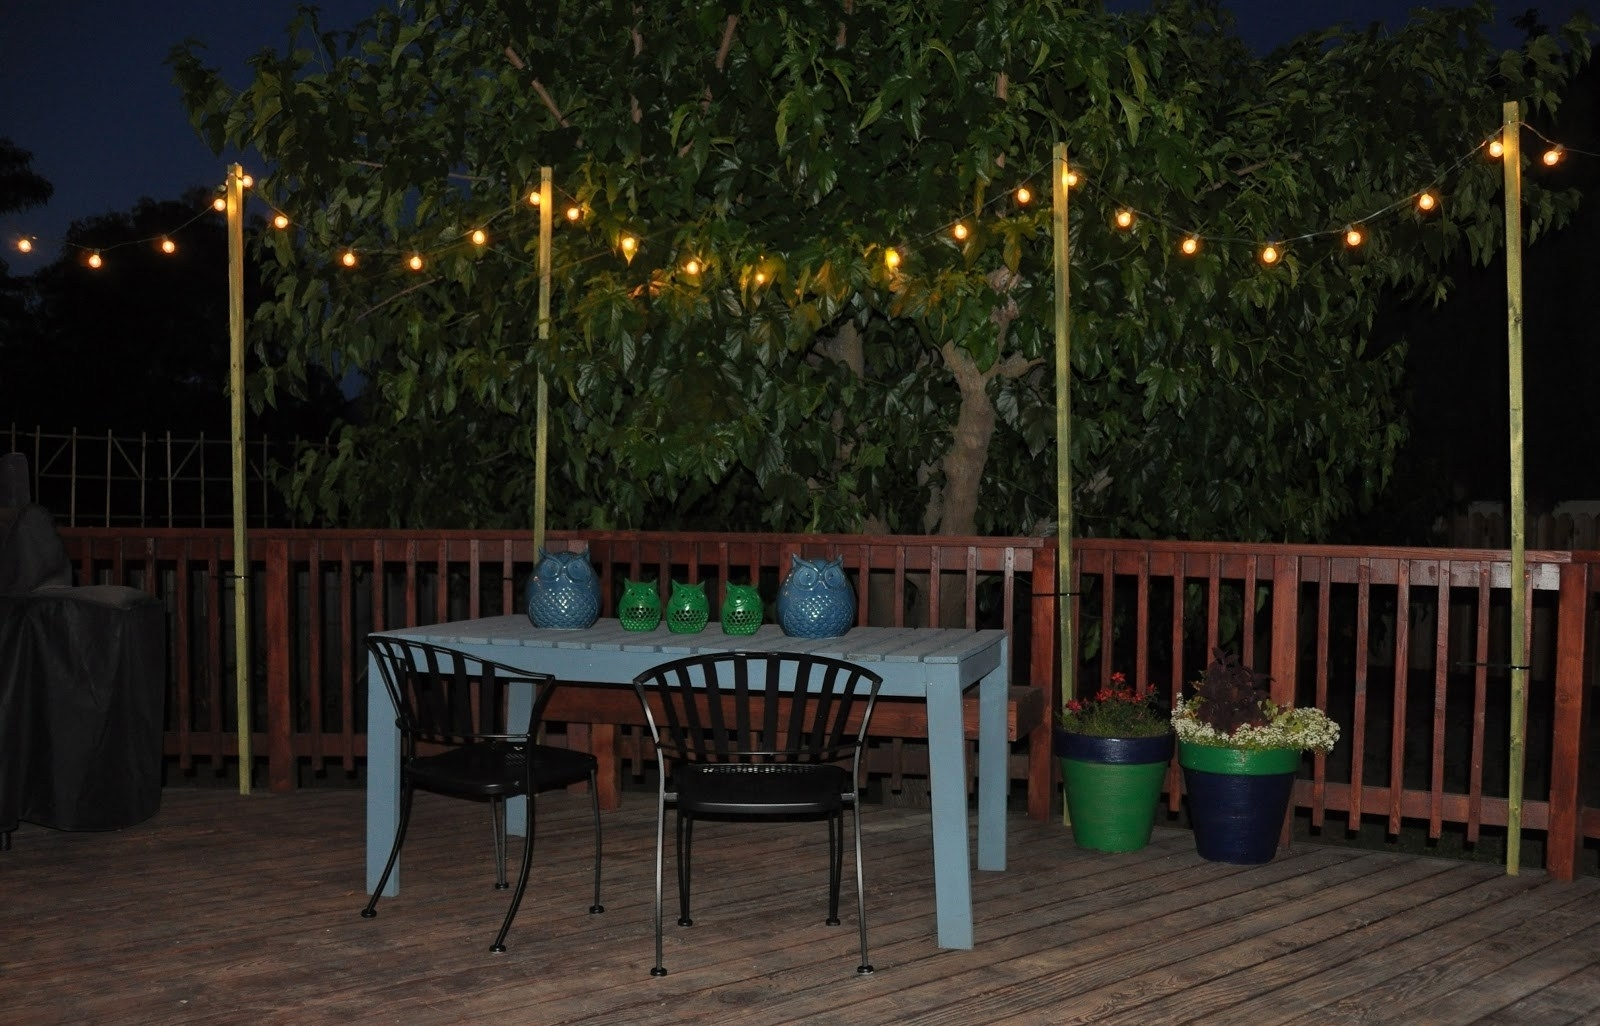 Most Recent Peaceably Patio Lighting Options Ways To Light Up Your Patio To Pertaining To Outdoor Hanging Lanterns For Patio (View 2 of 20)